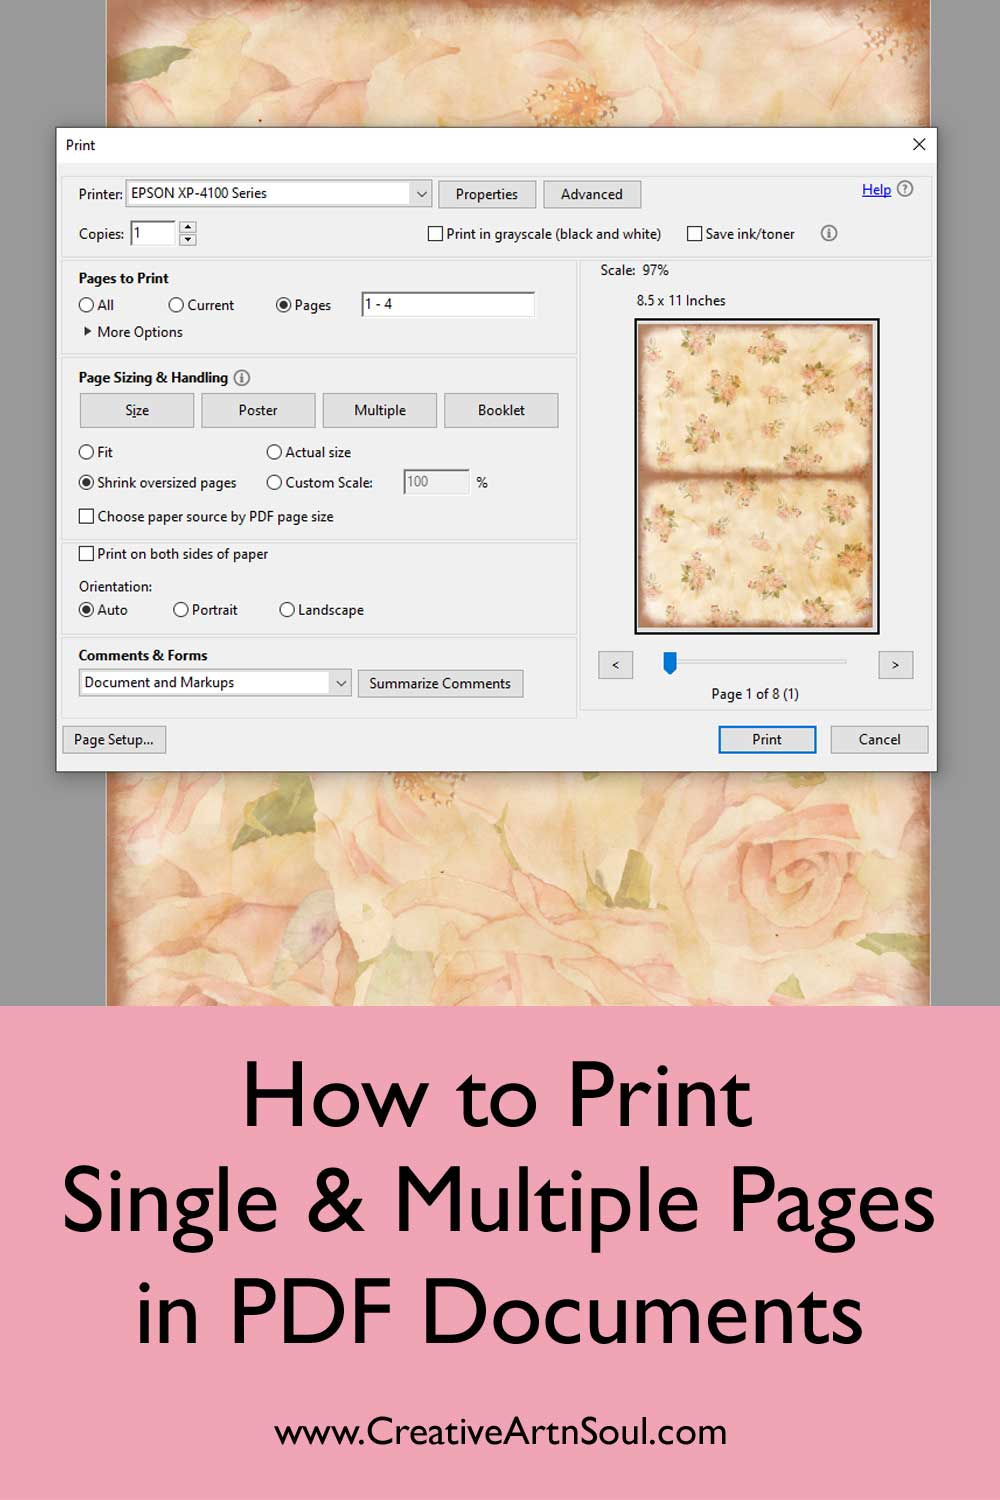 How to Print Single and Multiple Pages in PDF Documents